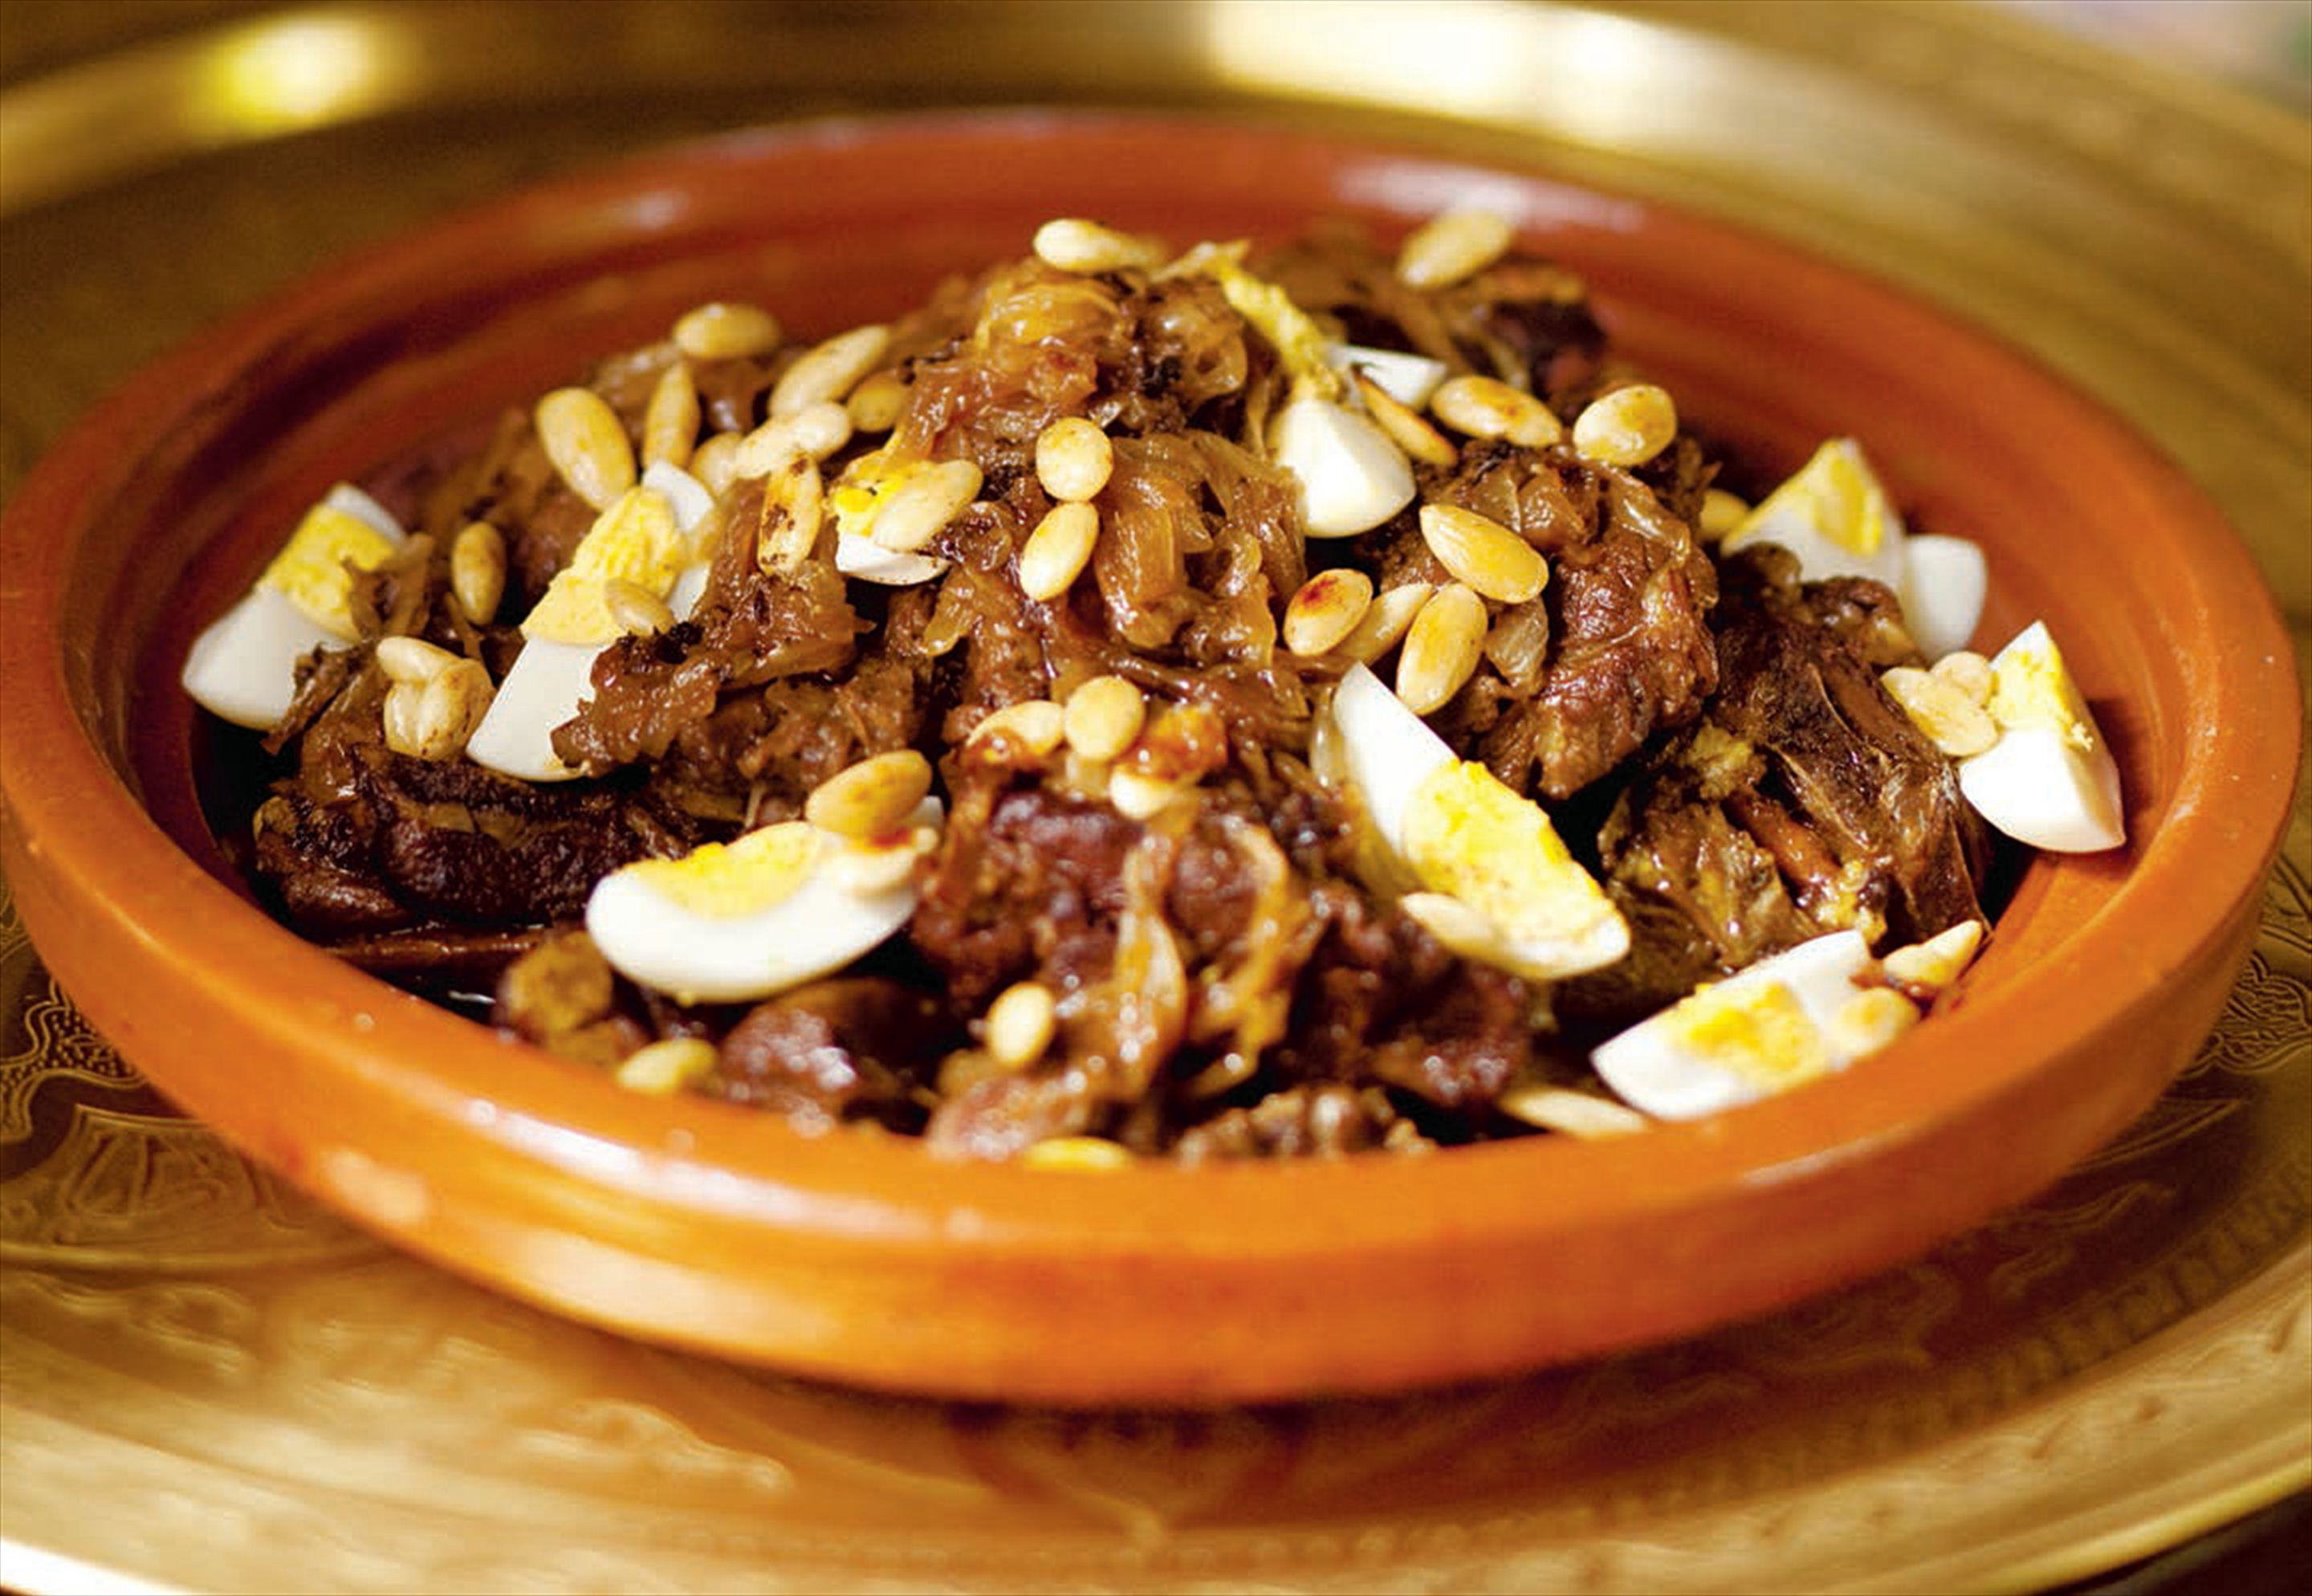 Lamb with onions, almonds and hard-boiled eggs